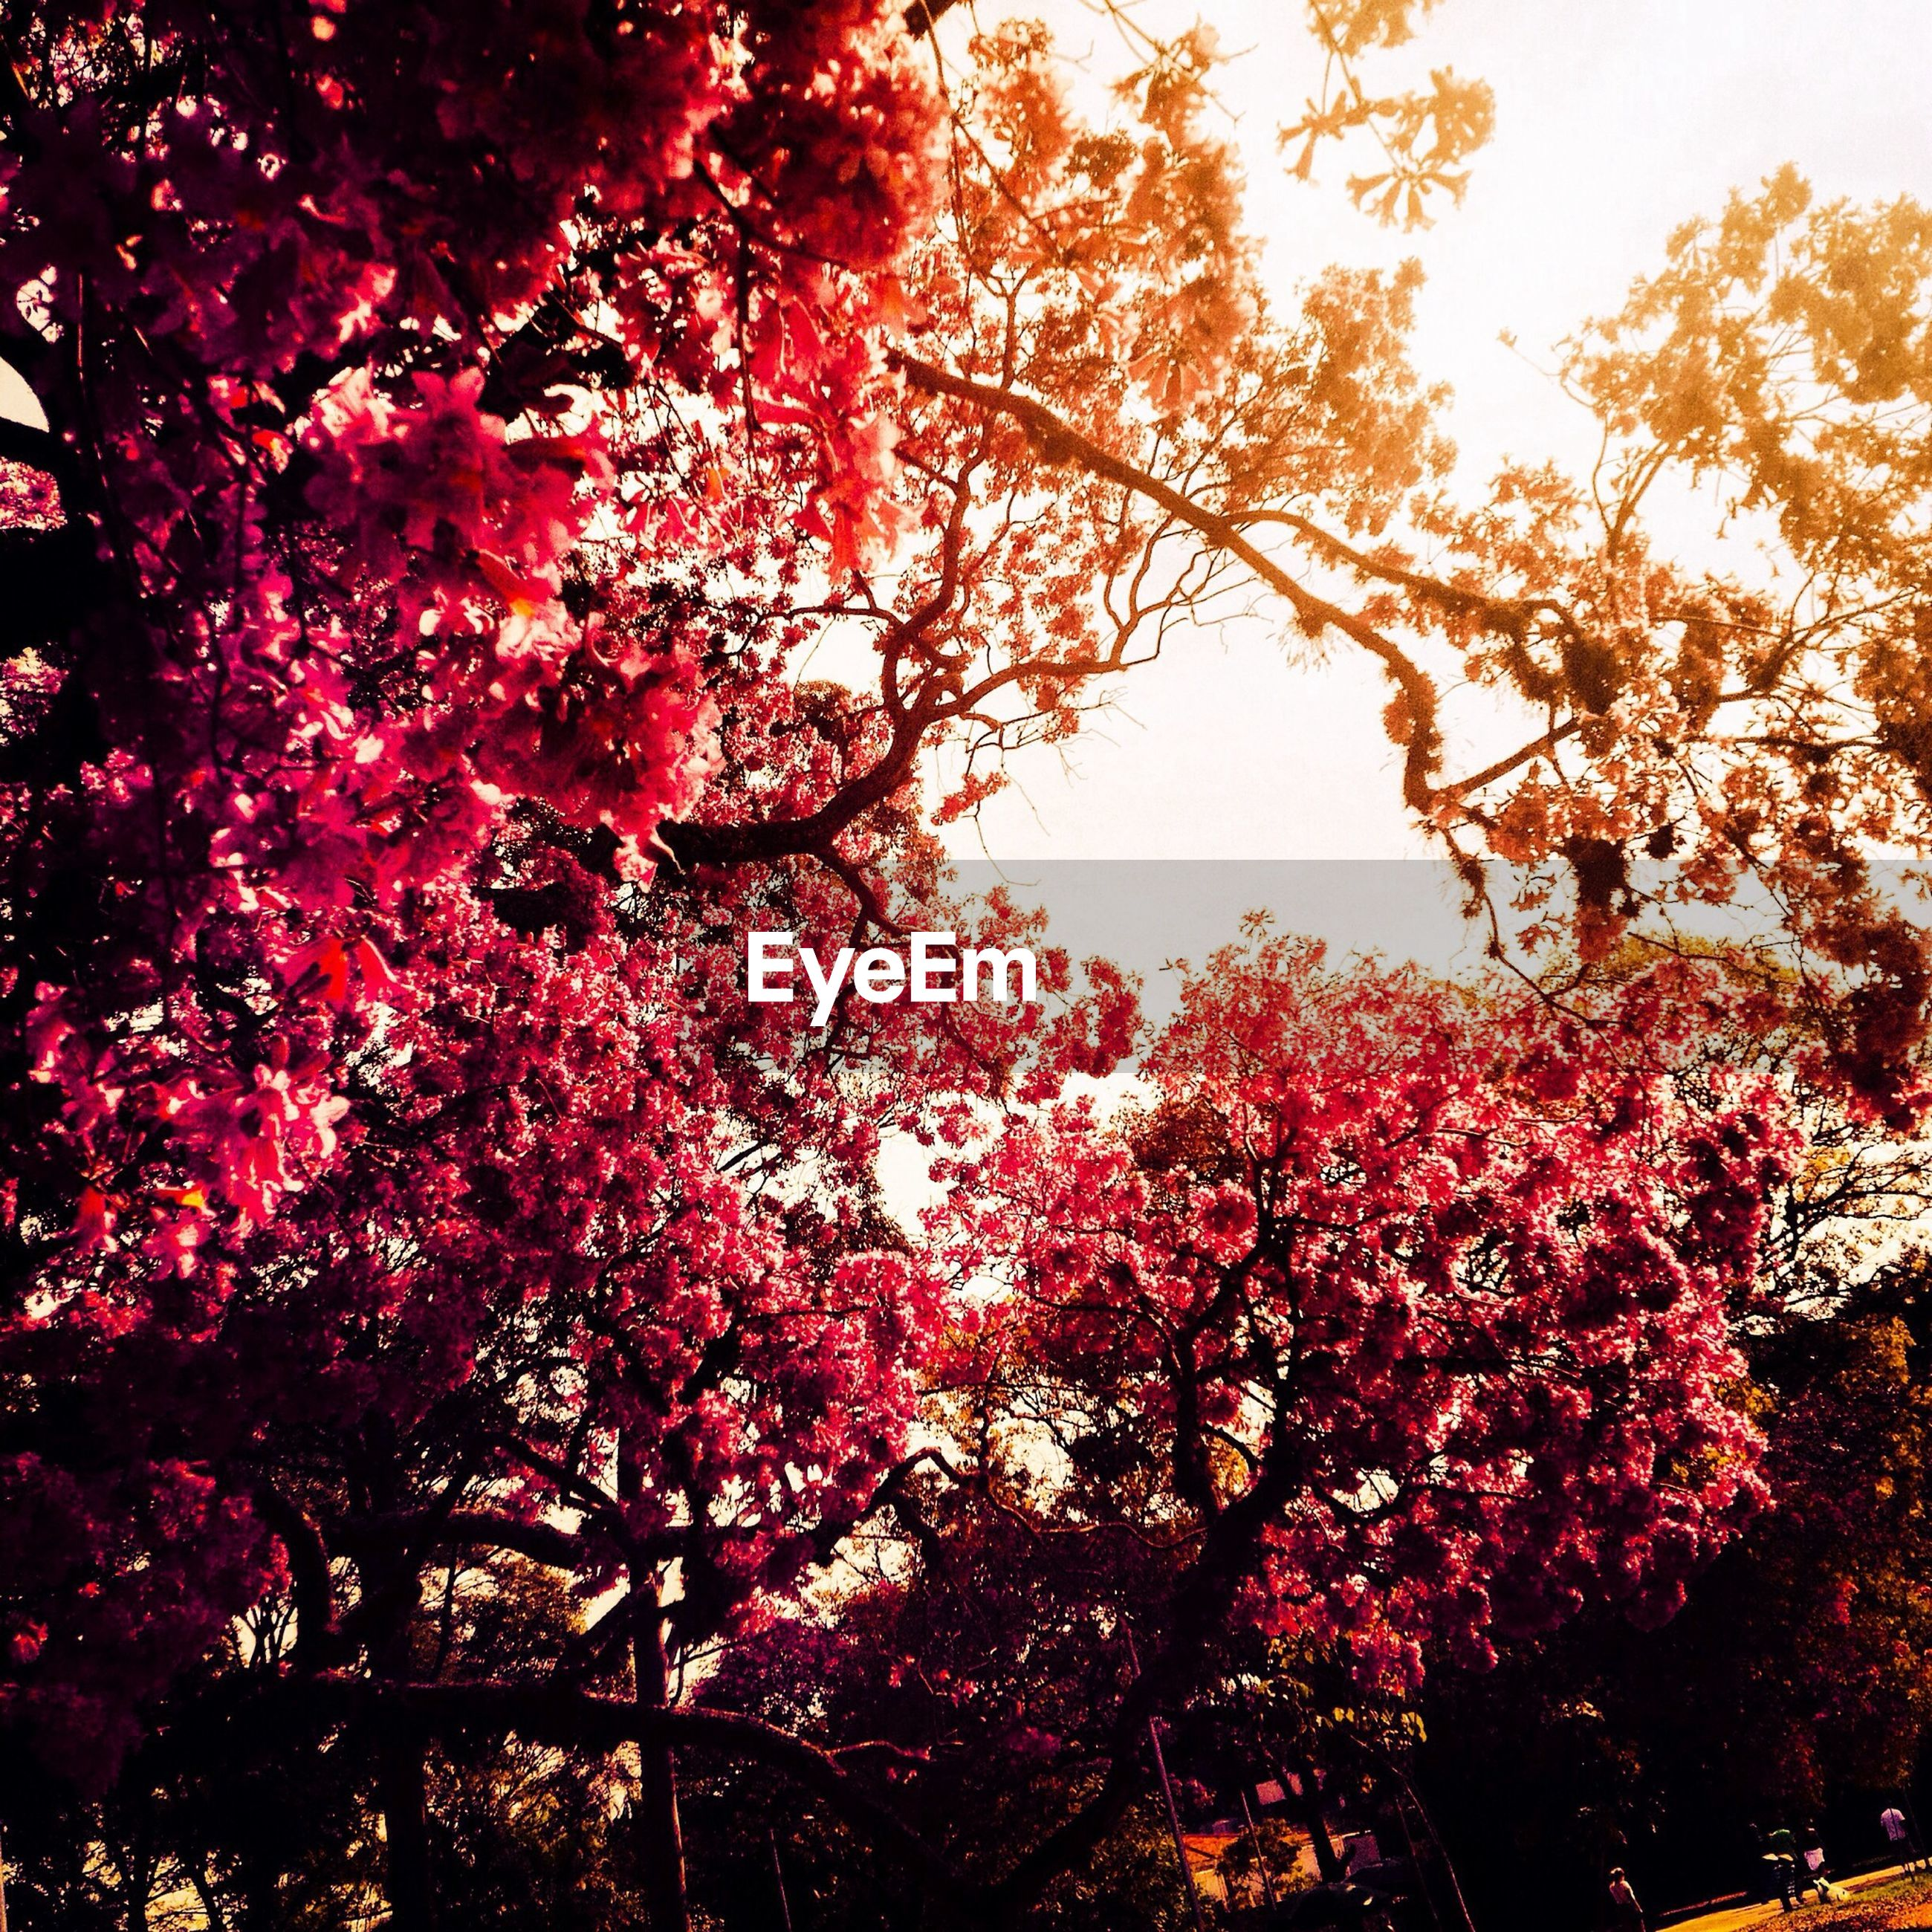 tree, branch, low angle view, growth, autumn, beauty in nature, change, nature, season, clear sky, red, leaf, tranquility, sky, outdoors, day, scenics, no people, flower, pink color